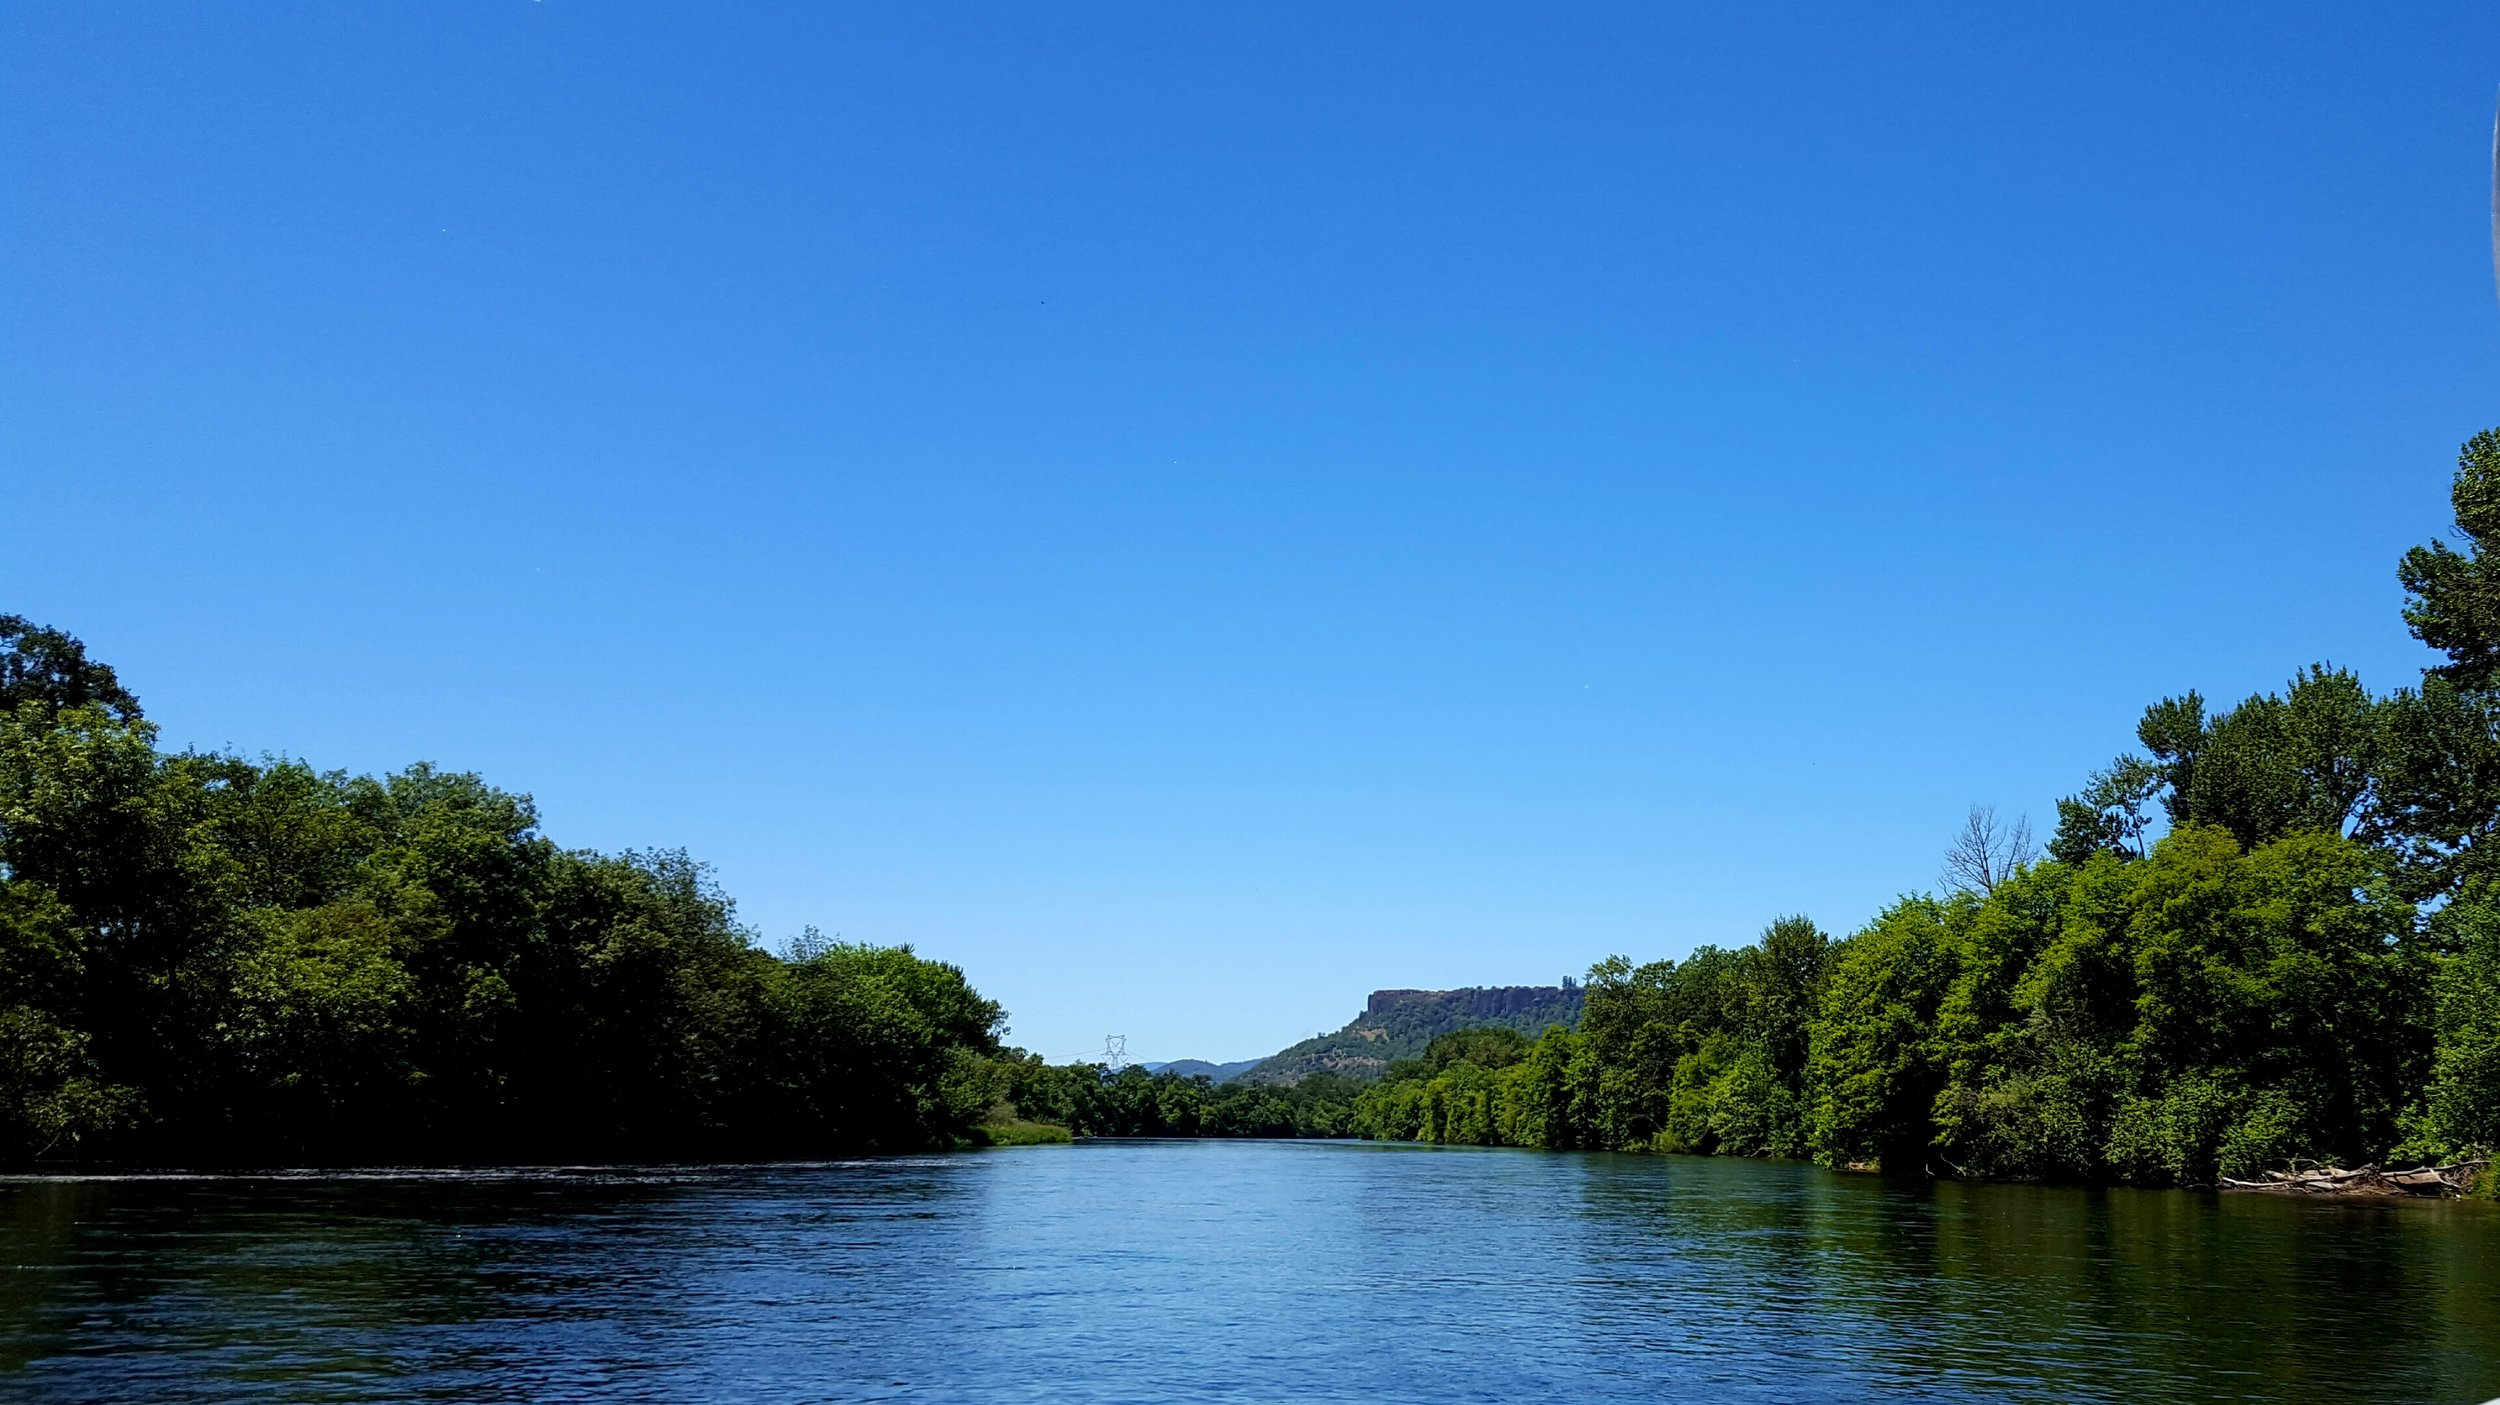 LOWER TABLE ROCK - ROGUE JET BOAT ADVENTURES - WHAT TO DO IN SOUTHERN OREGON